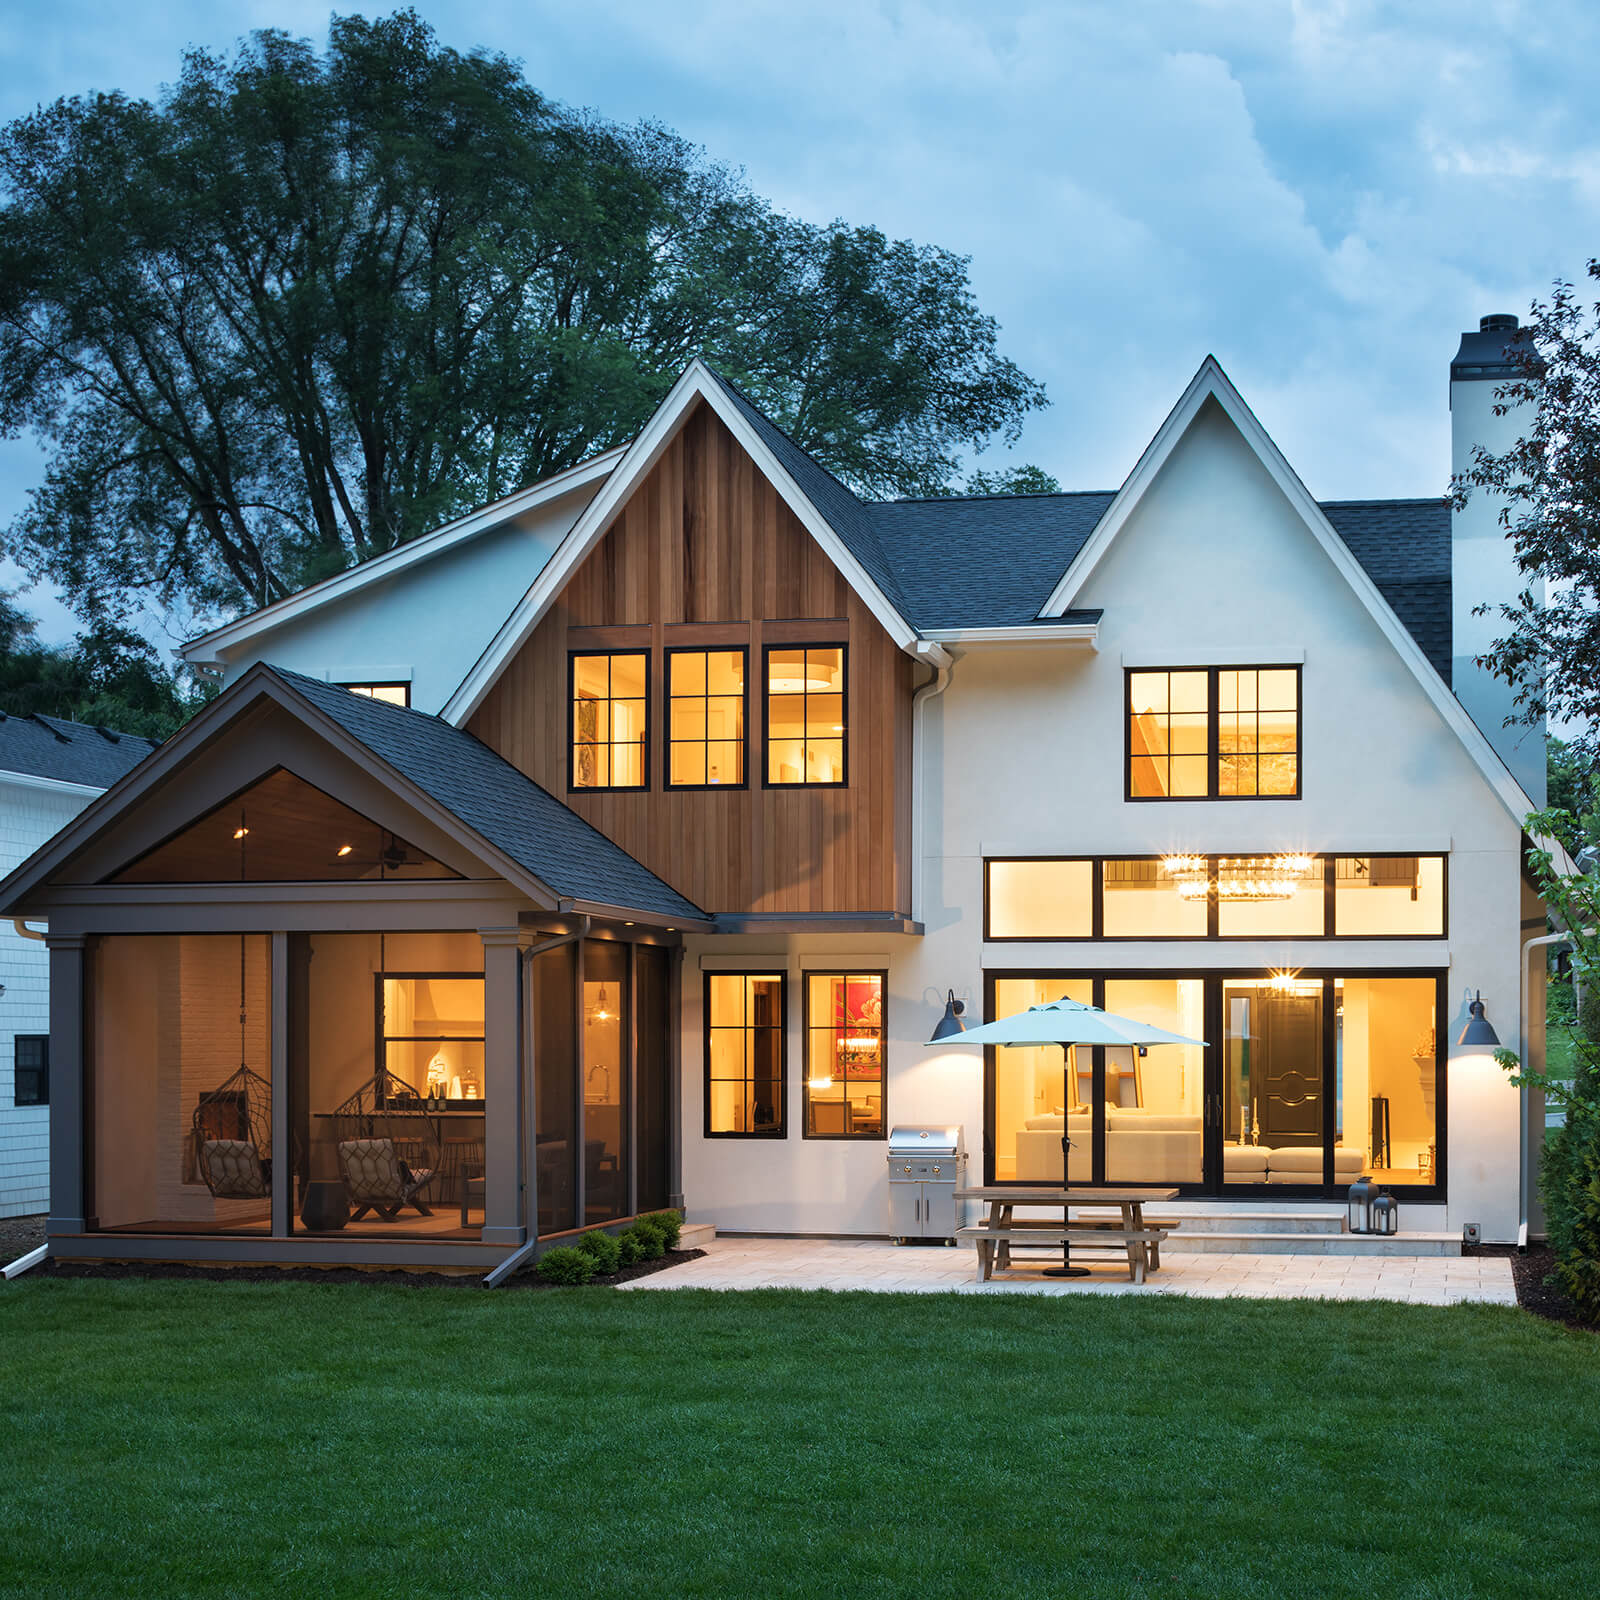 Exterior view of a modern traditional style home with Marvin Elevate Sliding French Door and Elevate Casement Windows